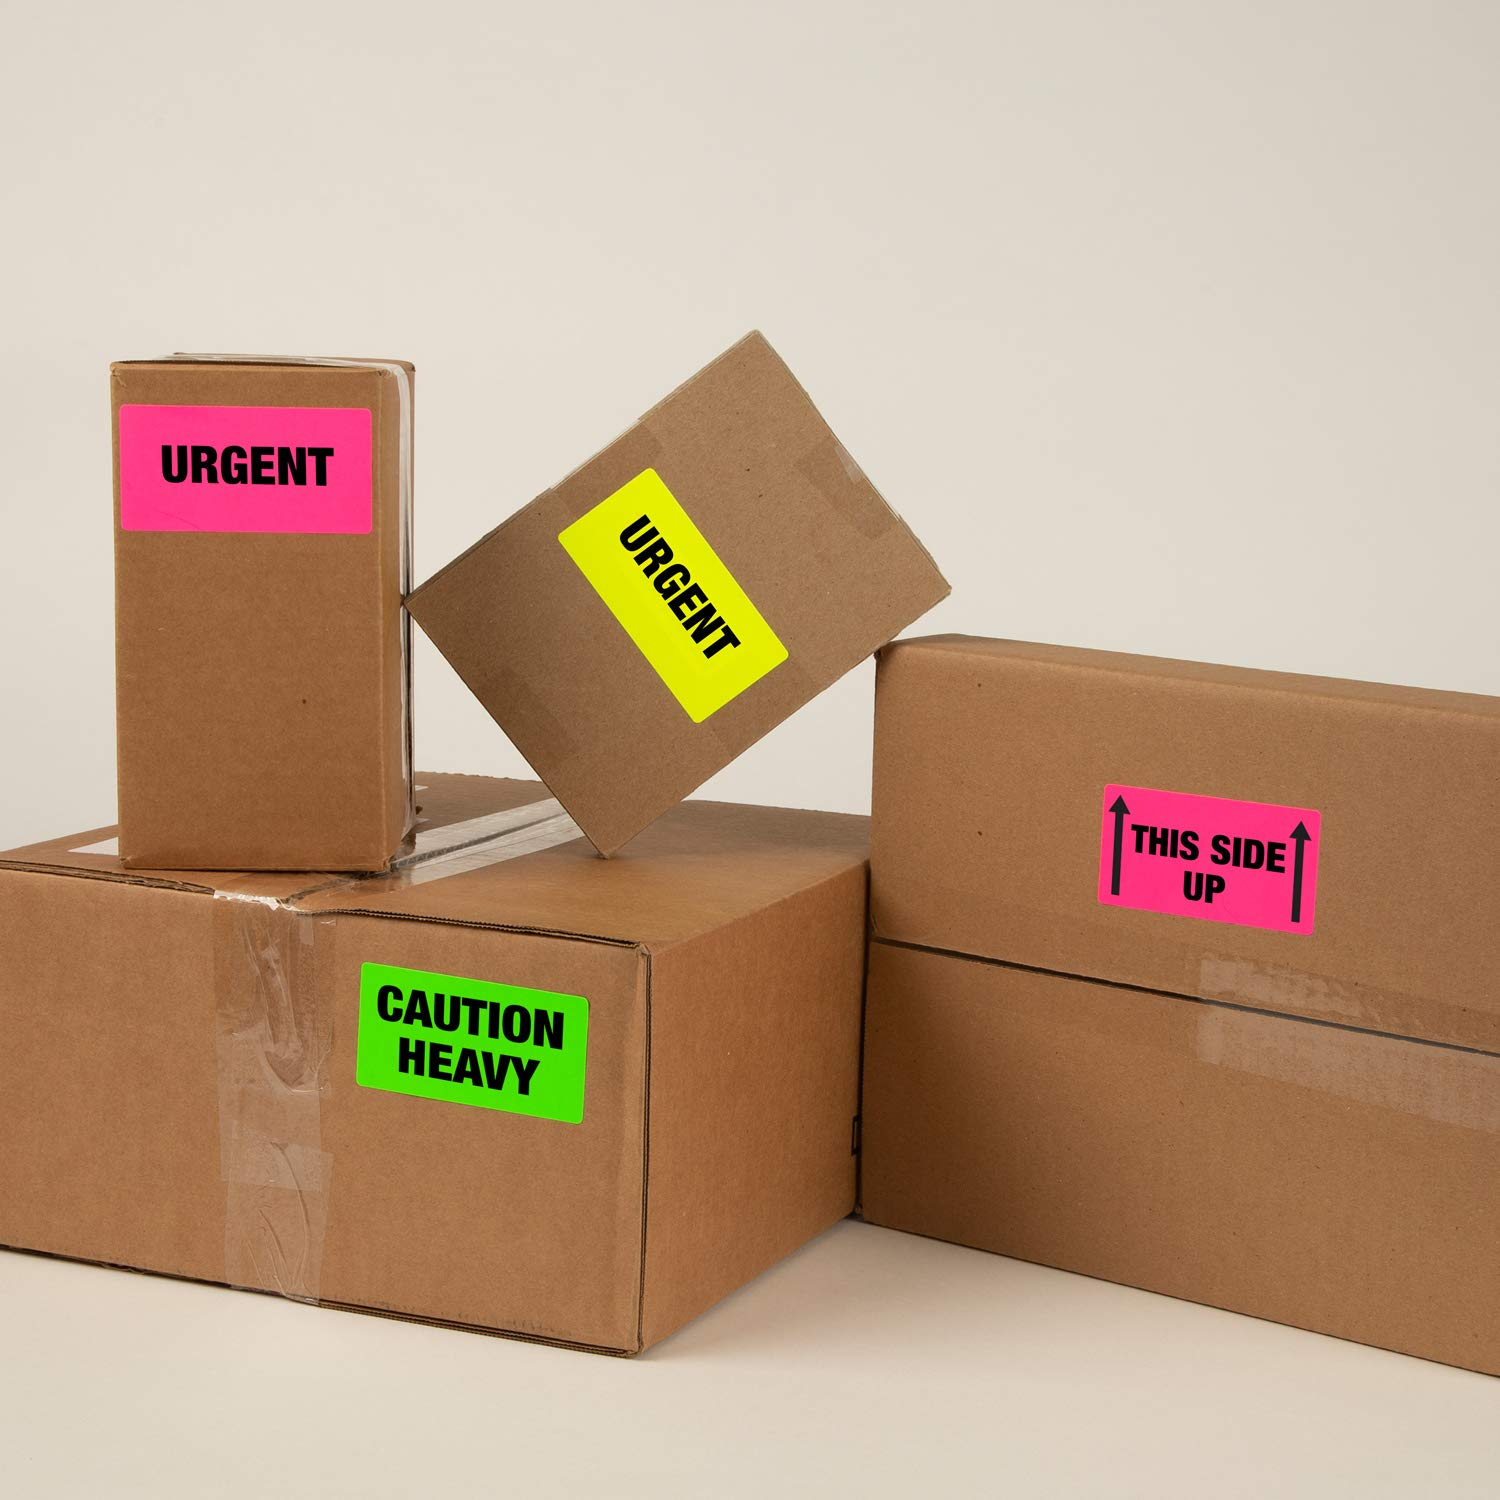 Avery High-Visibility Neon Shipping Labels for Laser Printers 2'' x 4'', Assorted Colors, Box of 1,000 (5964) by Avery (Image #2)